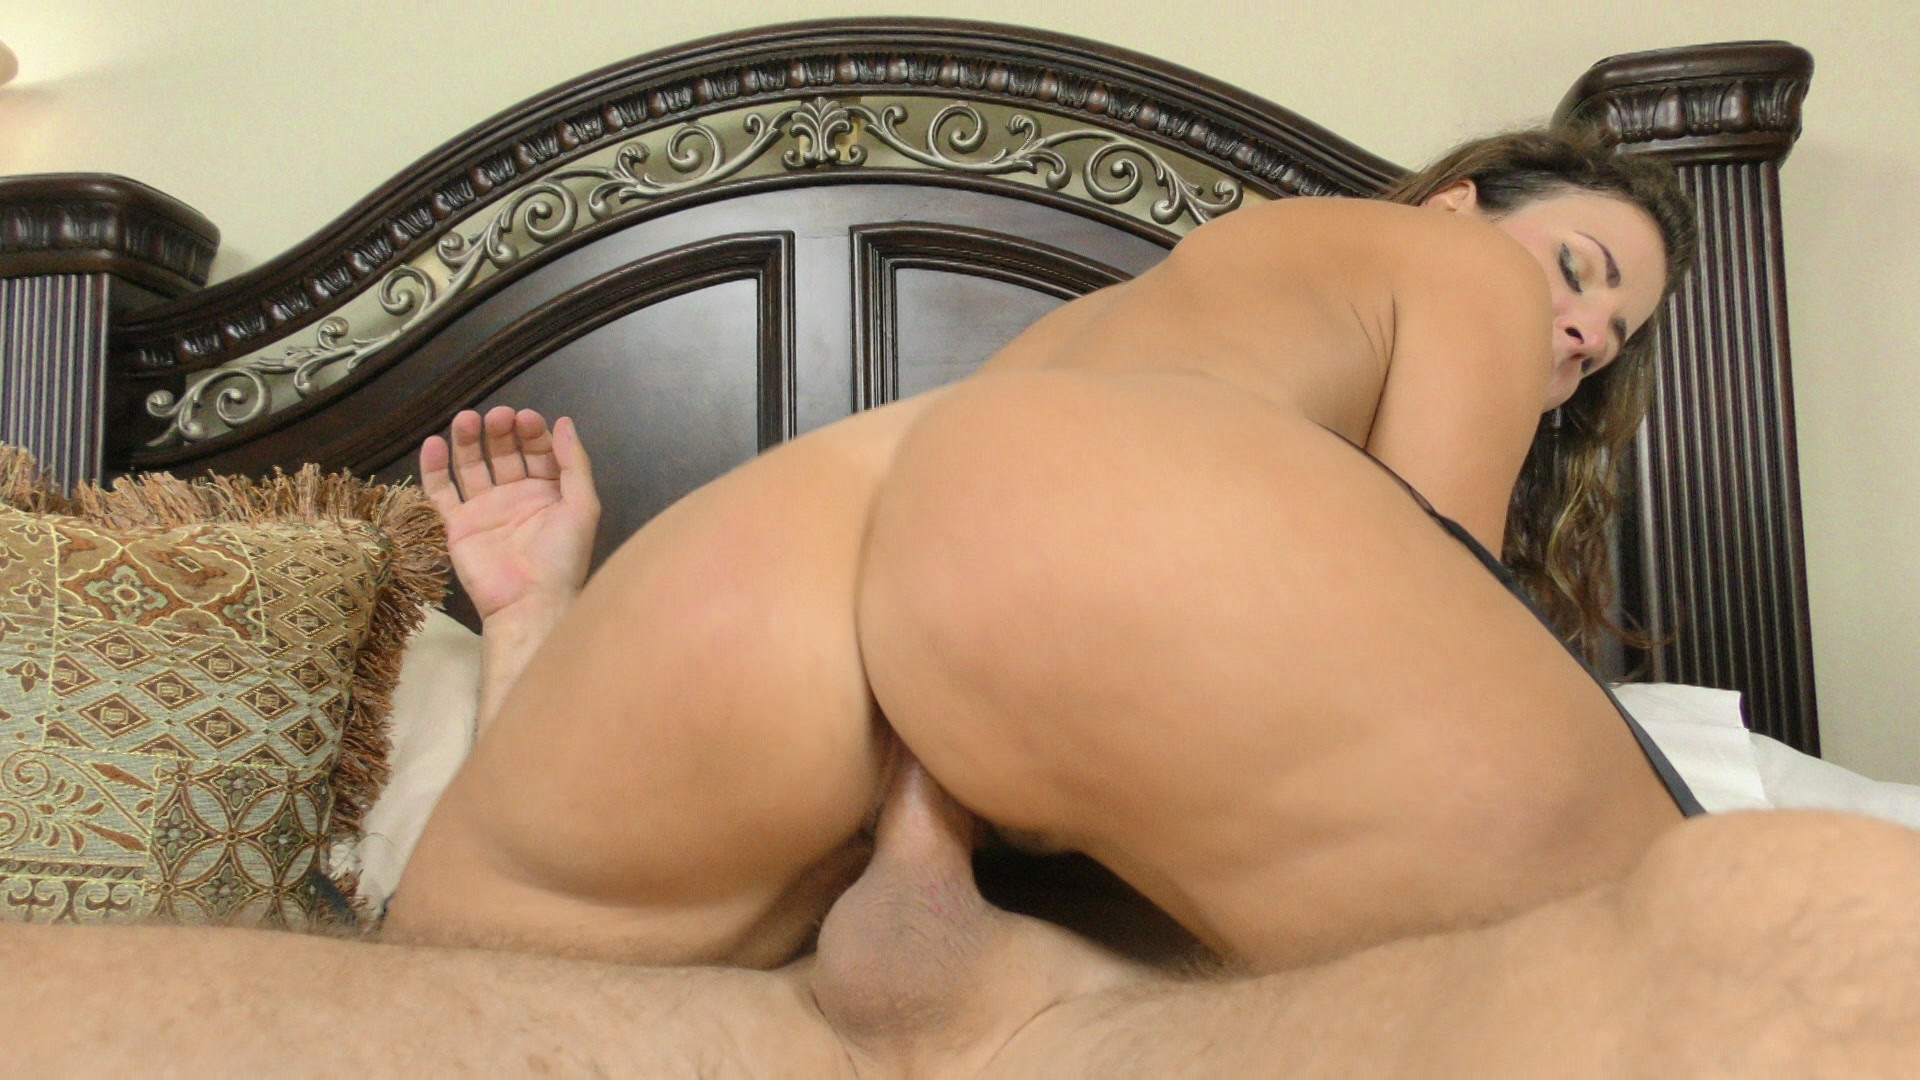 Free video preview image from stepsister is a smoking hot milf